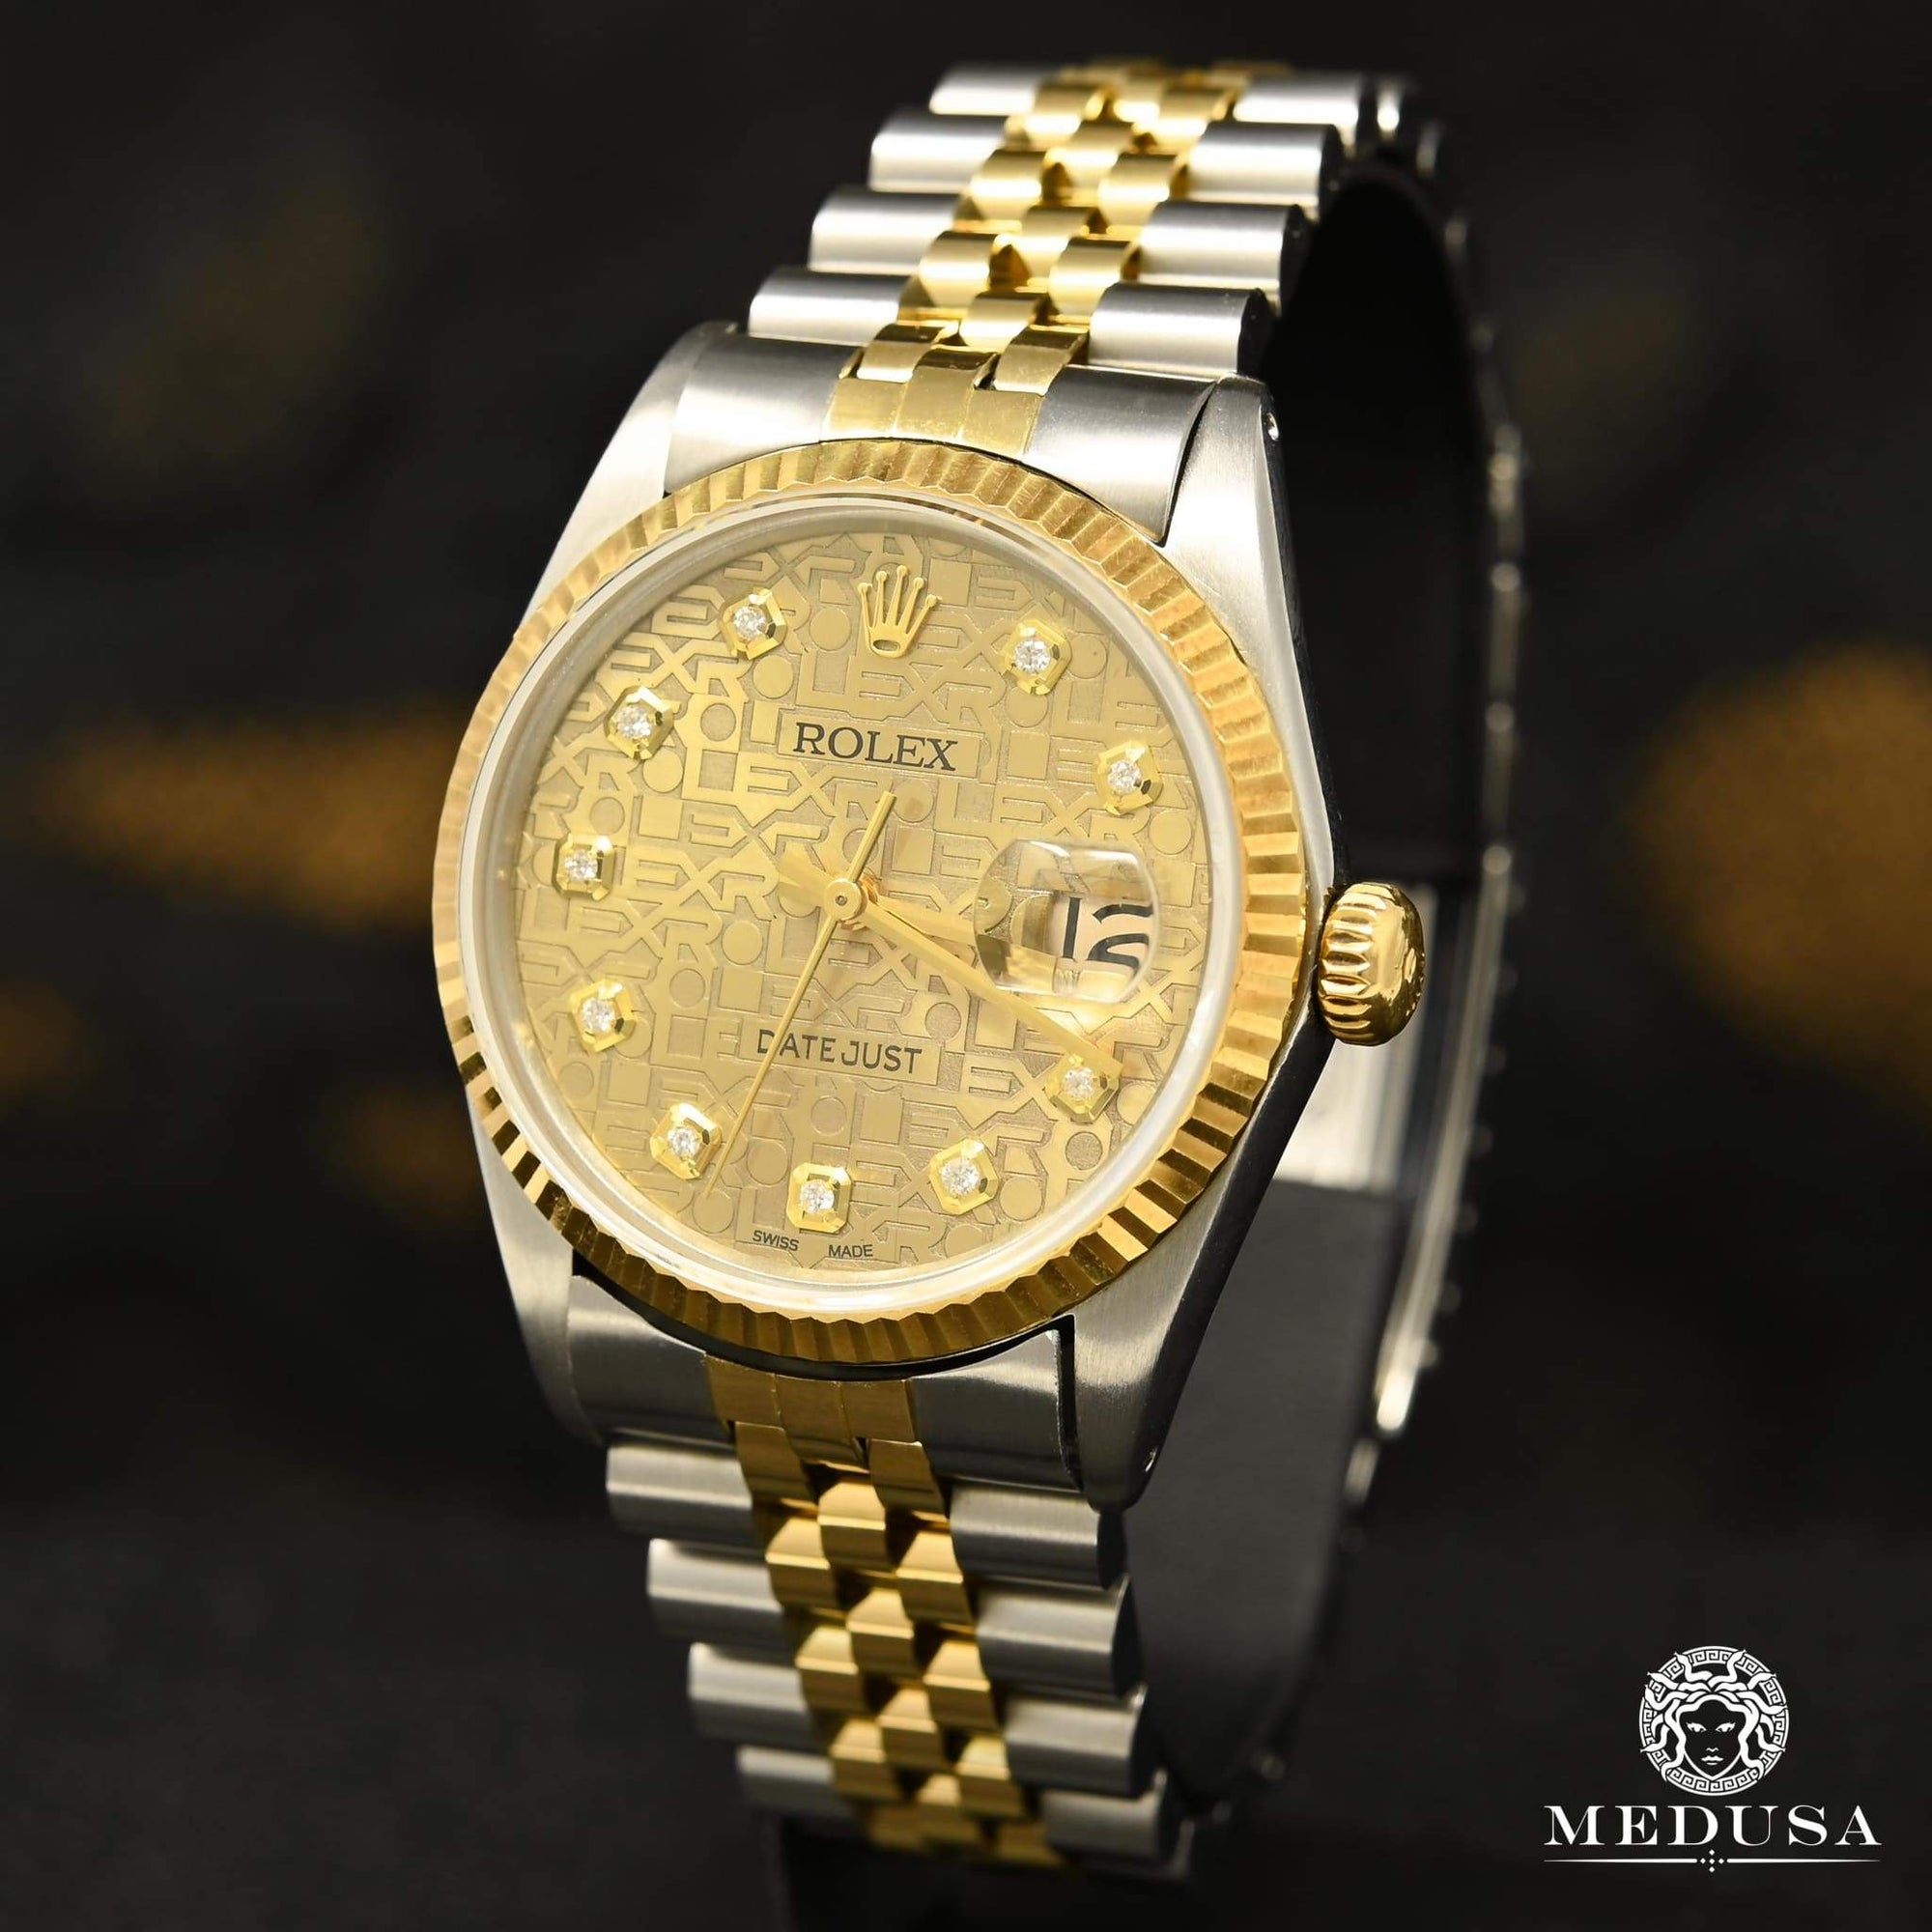 Rolex Datejust 36mm - Cadran Or Jubilee